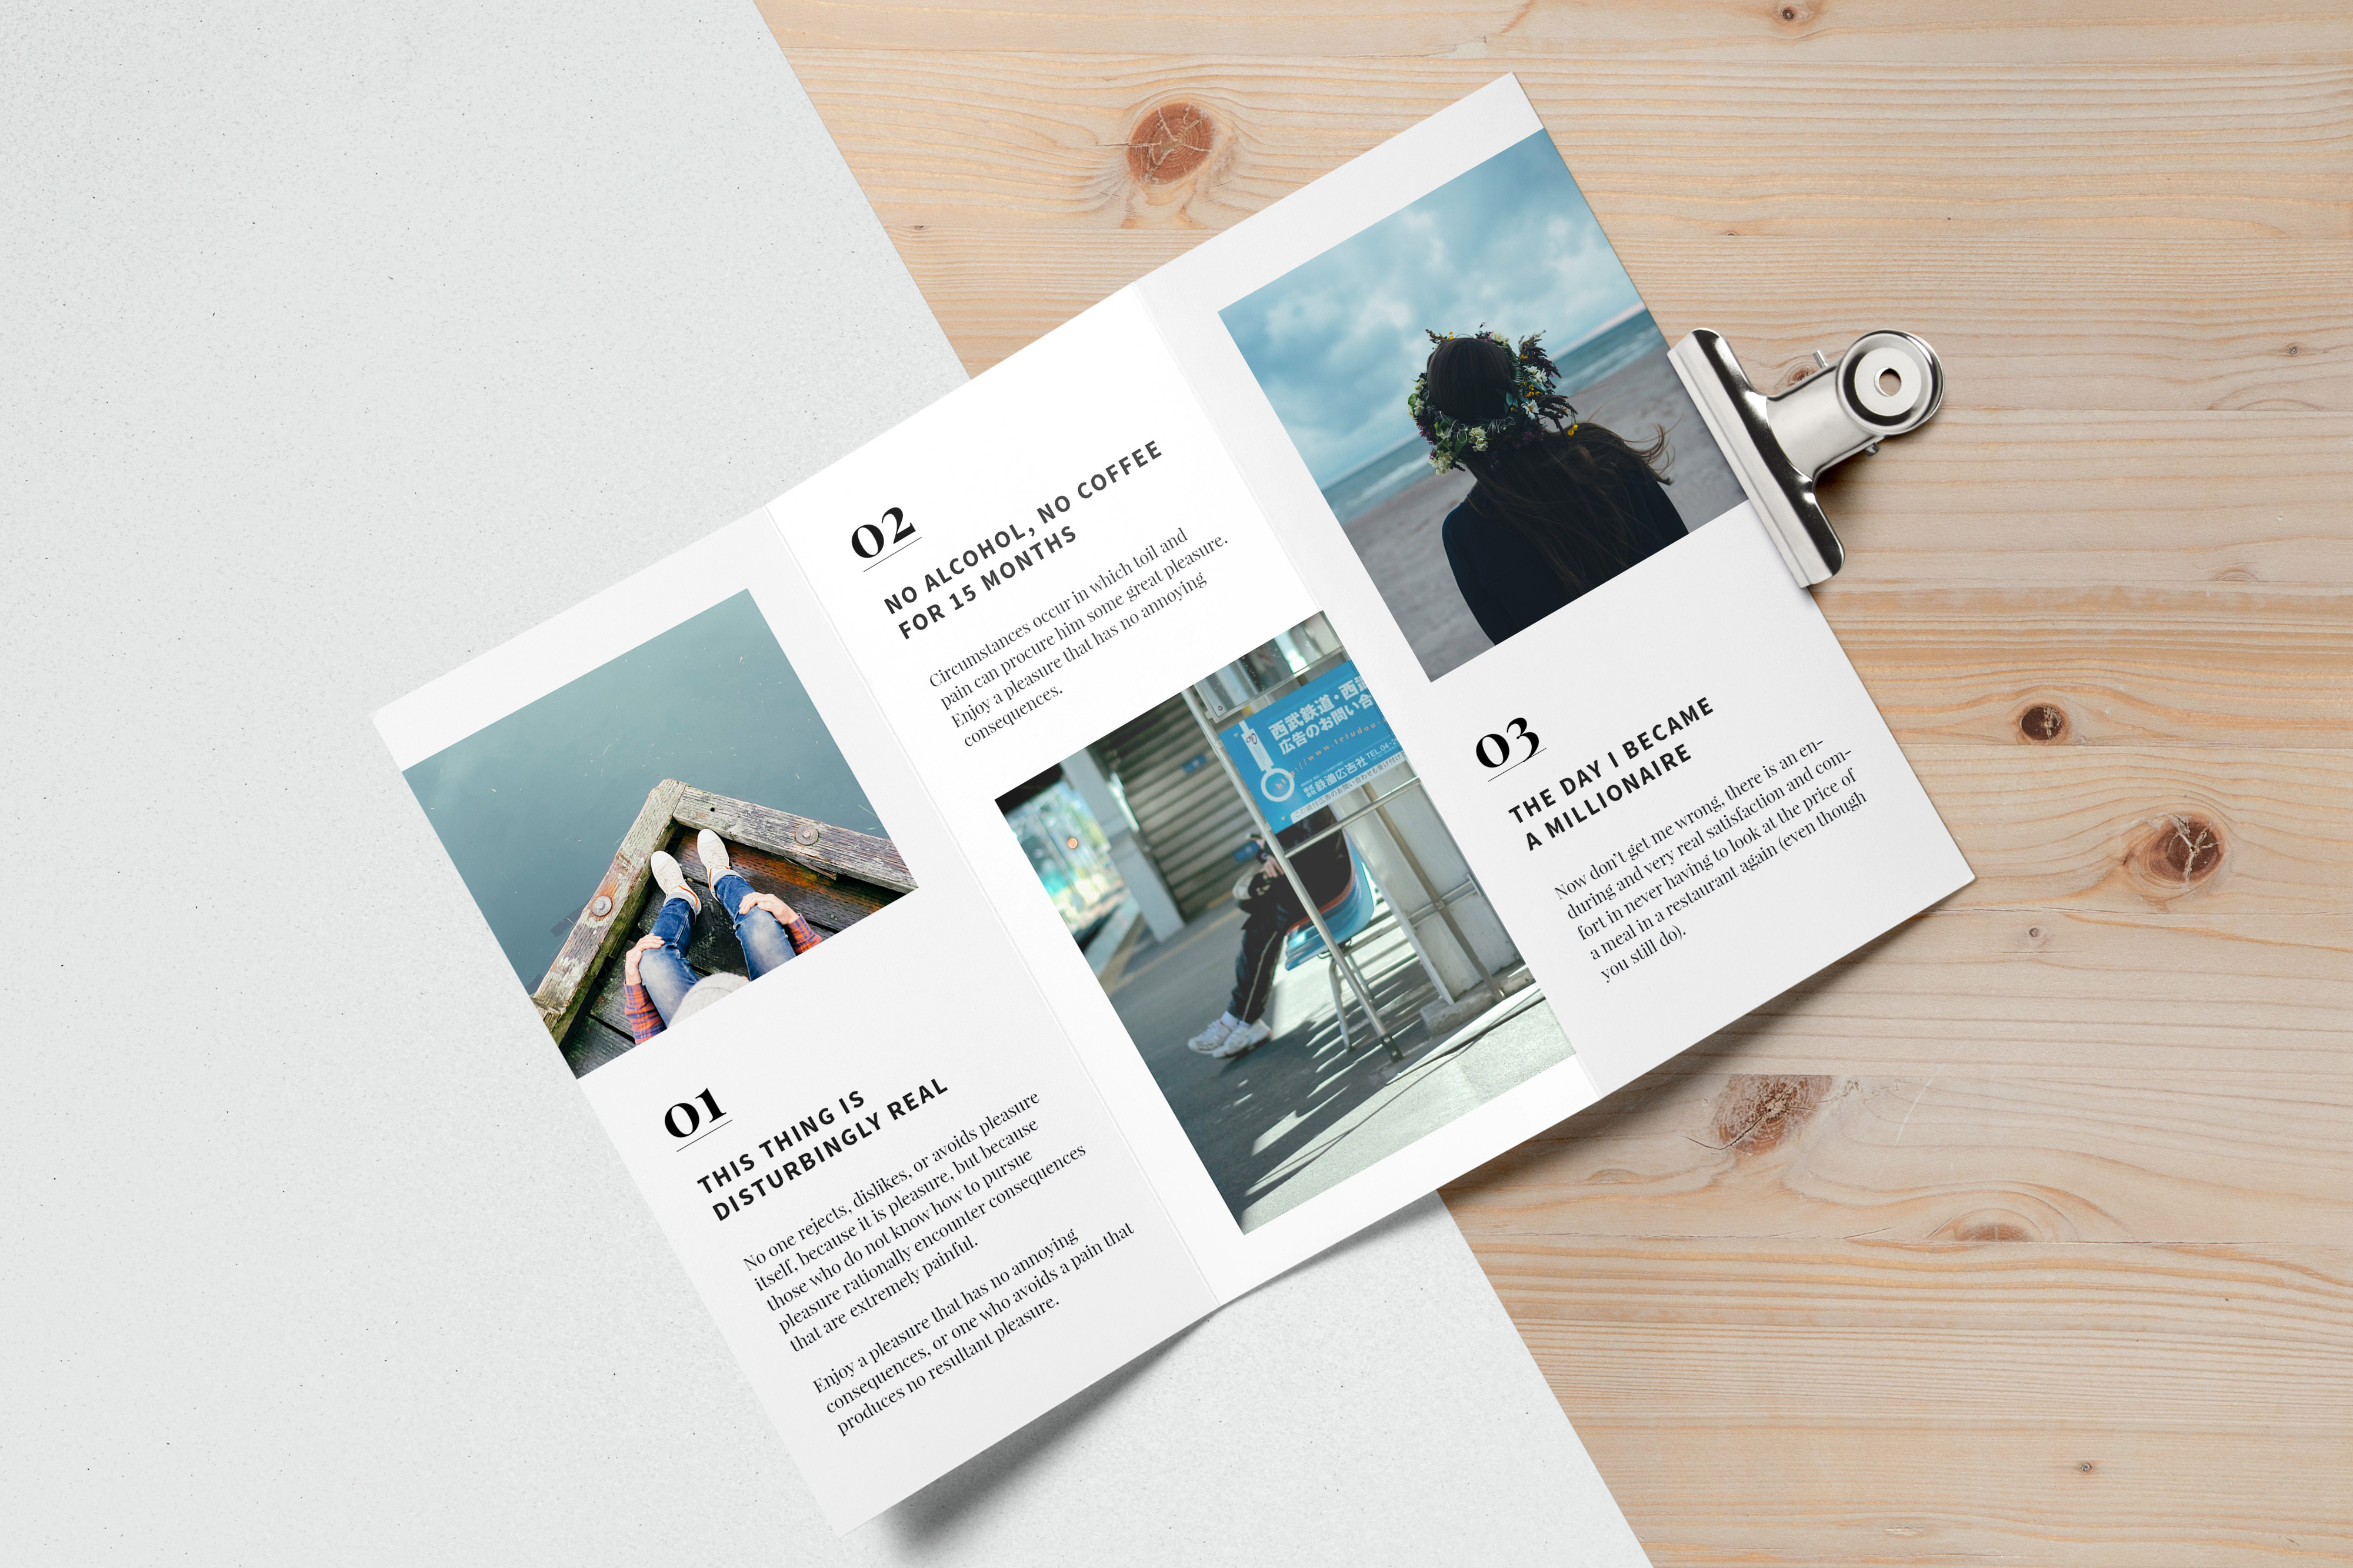 Blugraphic – Quality Design Freebies for Creatives